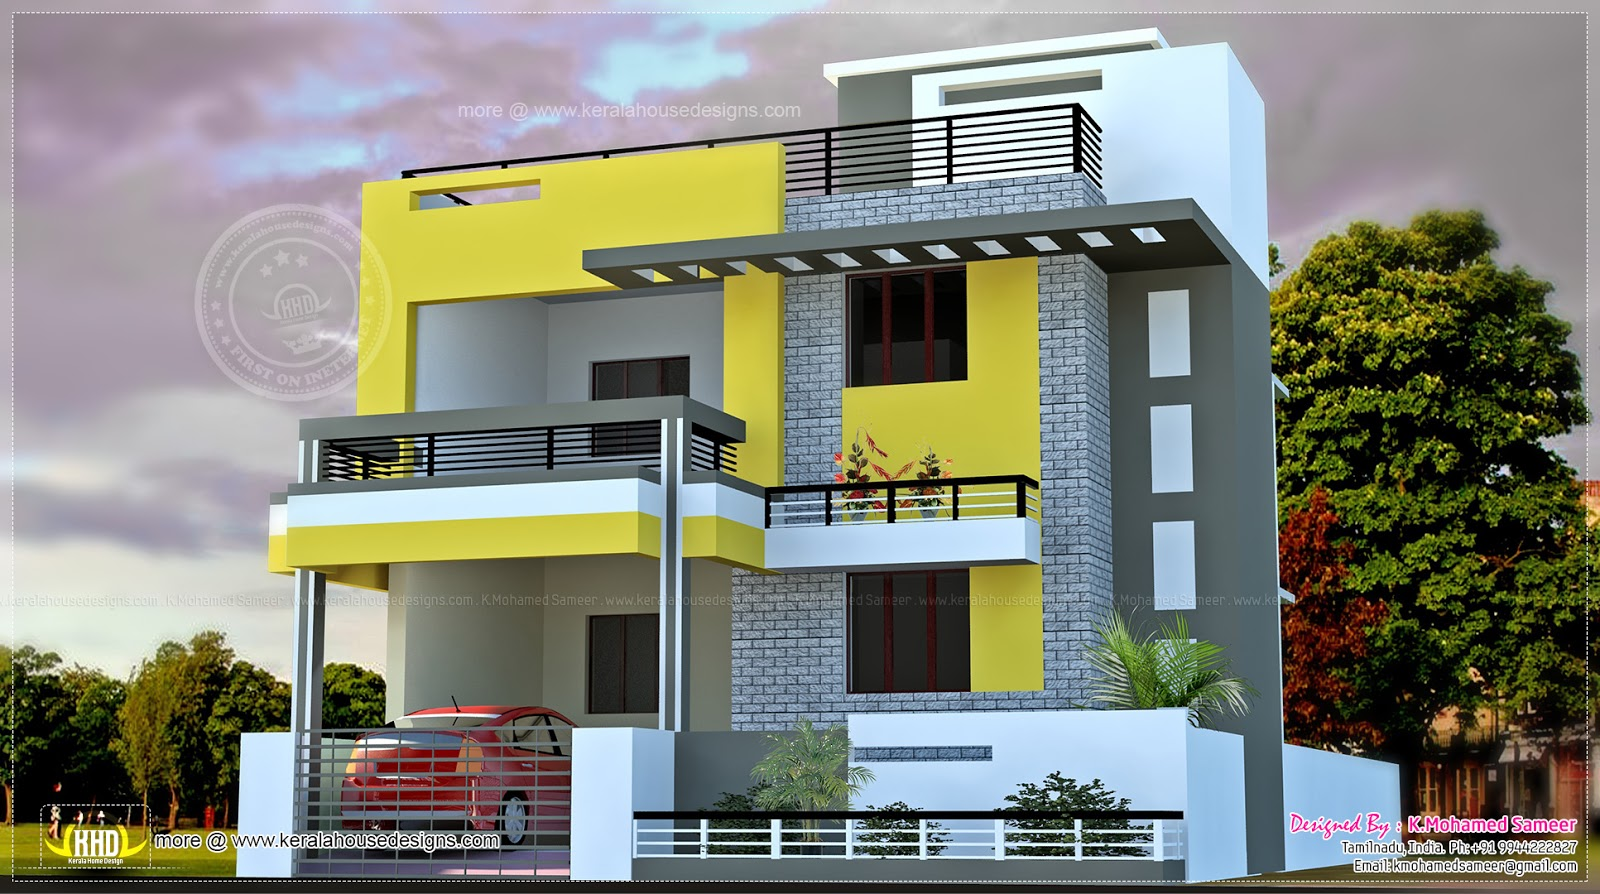 India house plan in modern style kerala home design and for House plans indian style in 1200 sq ft